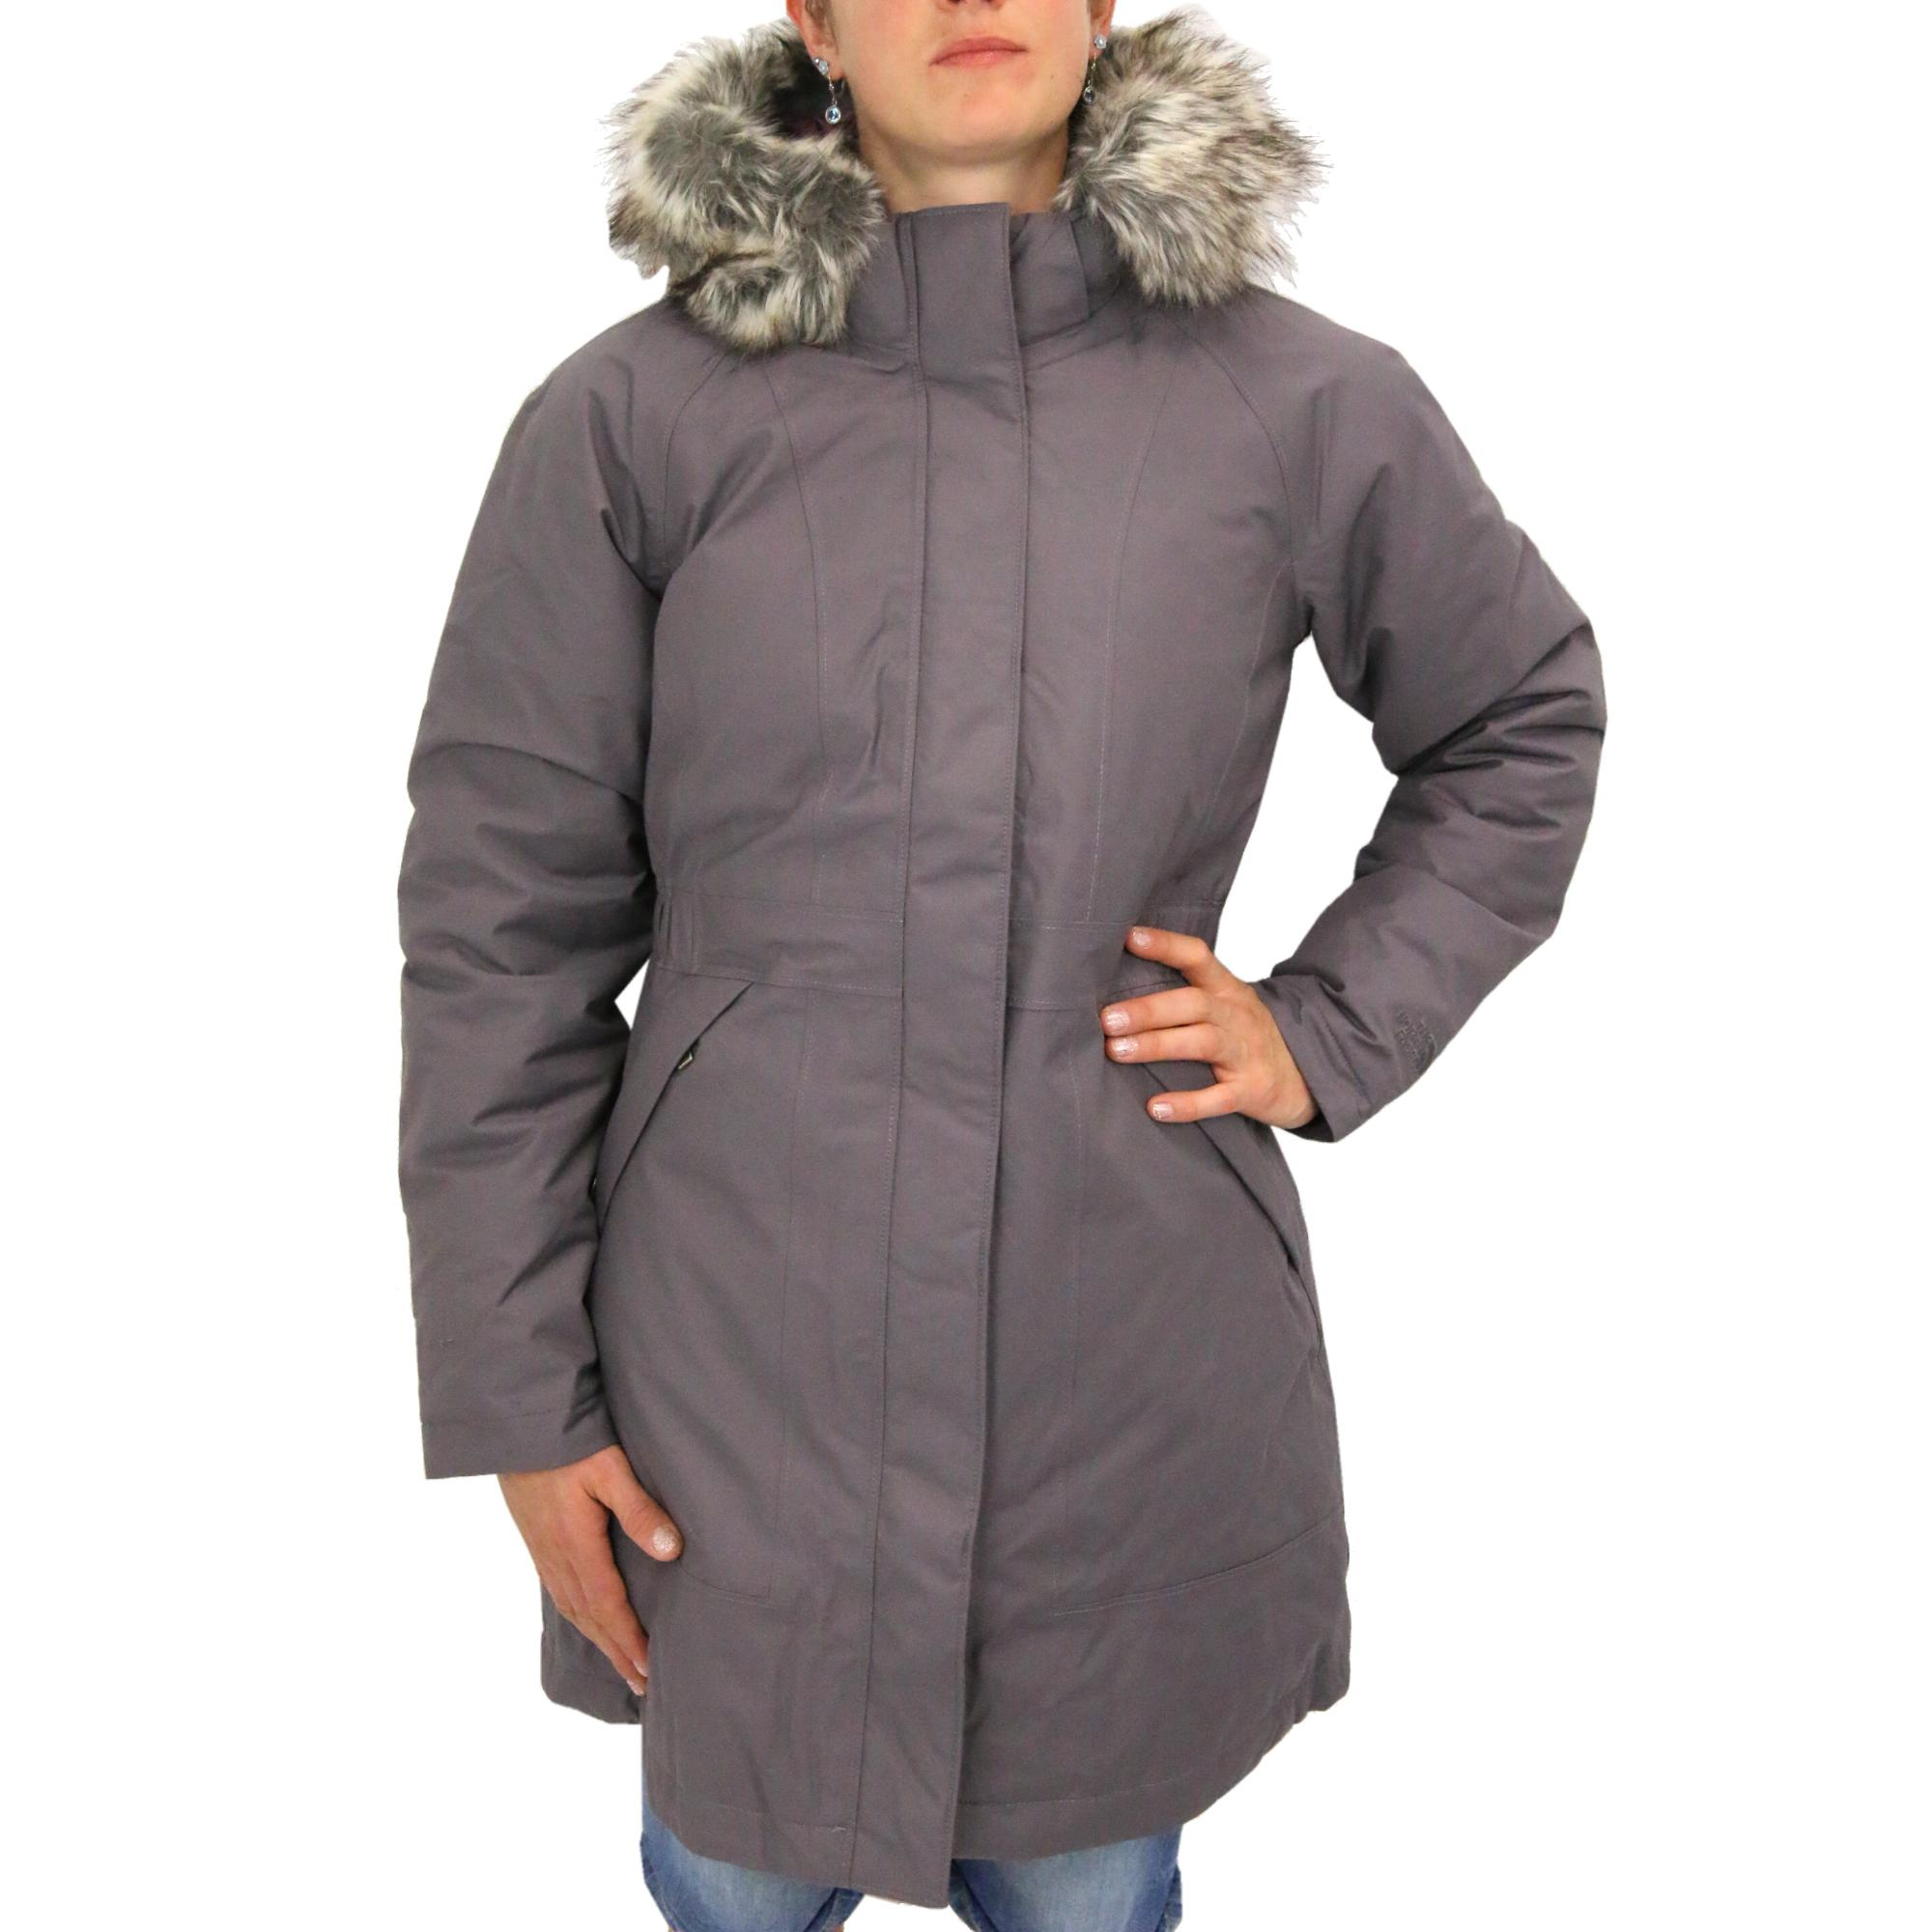 the north face arctic parka mantel wintermantel daunenmantel 550 cuin damen grau ebay. Black Bedroom Furniture Sets. Home Design Ideas